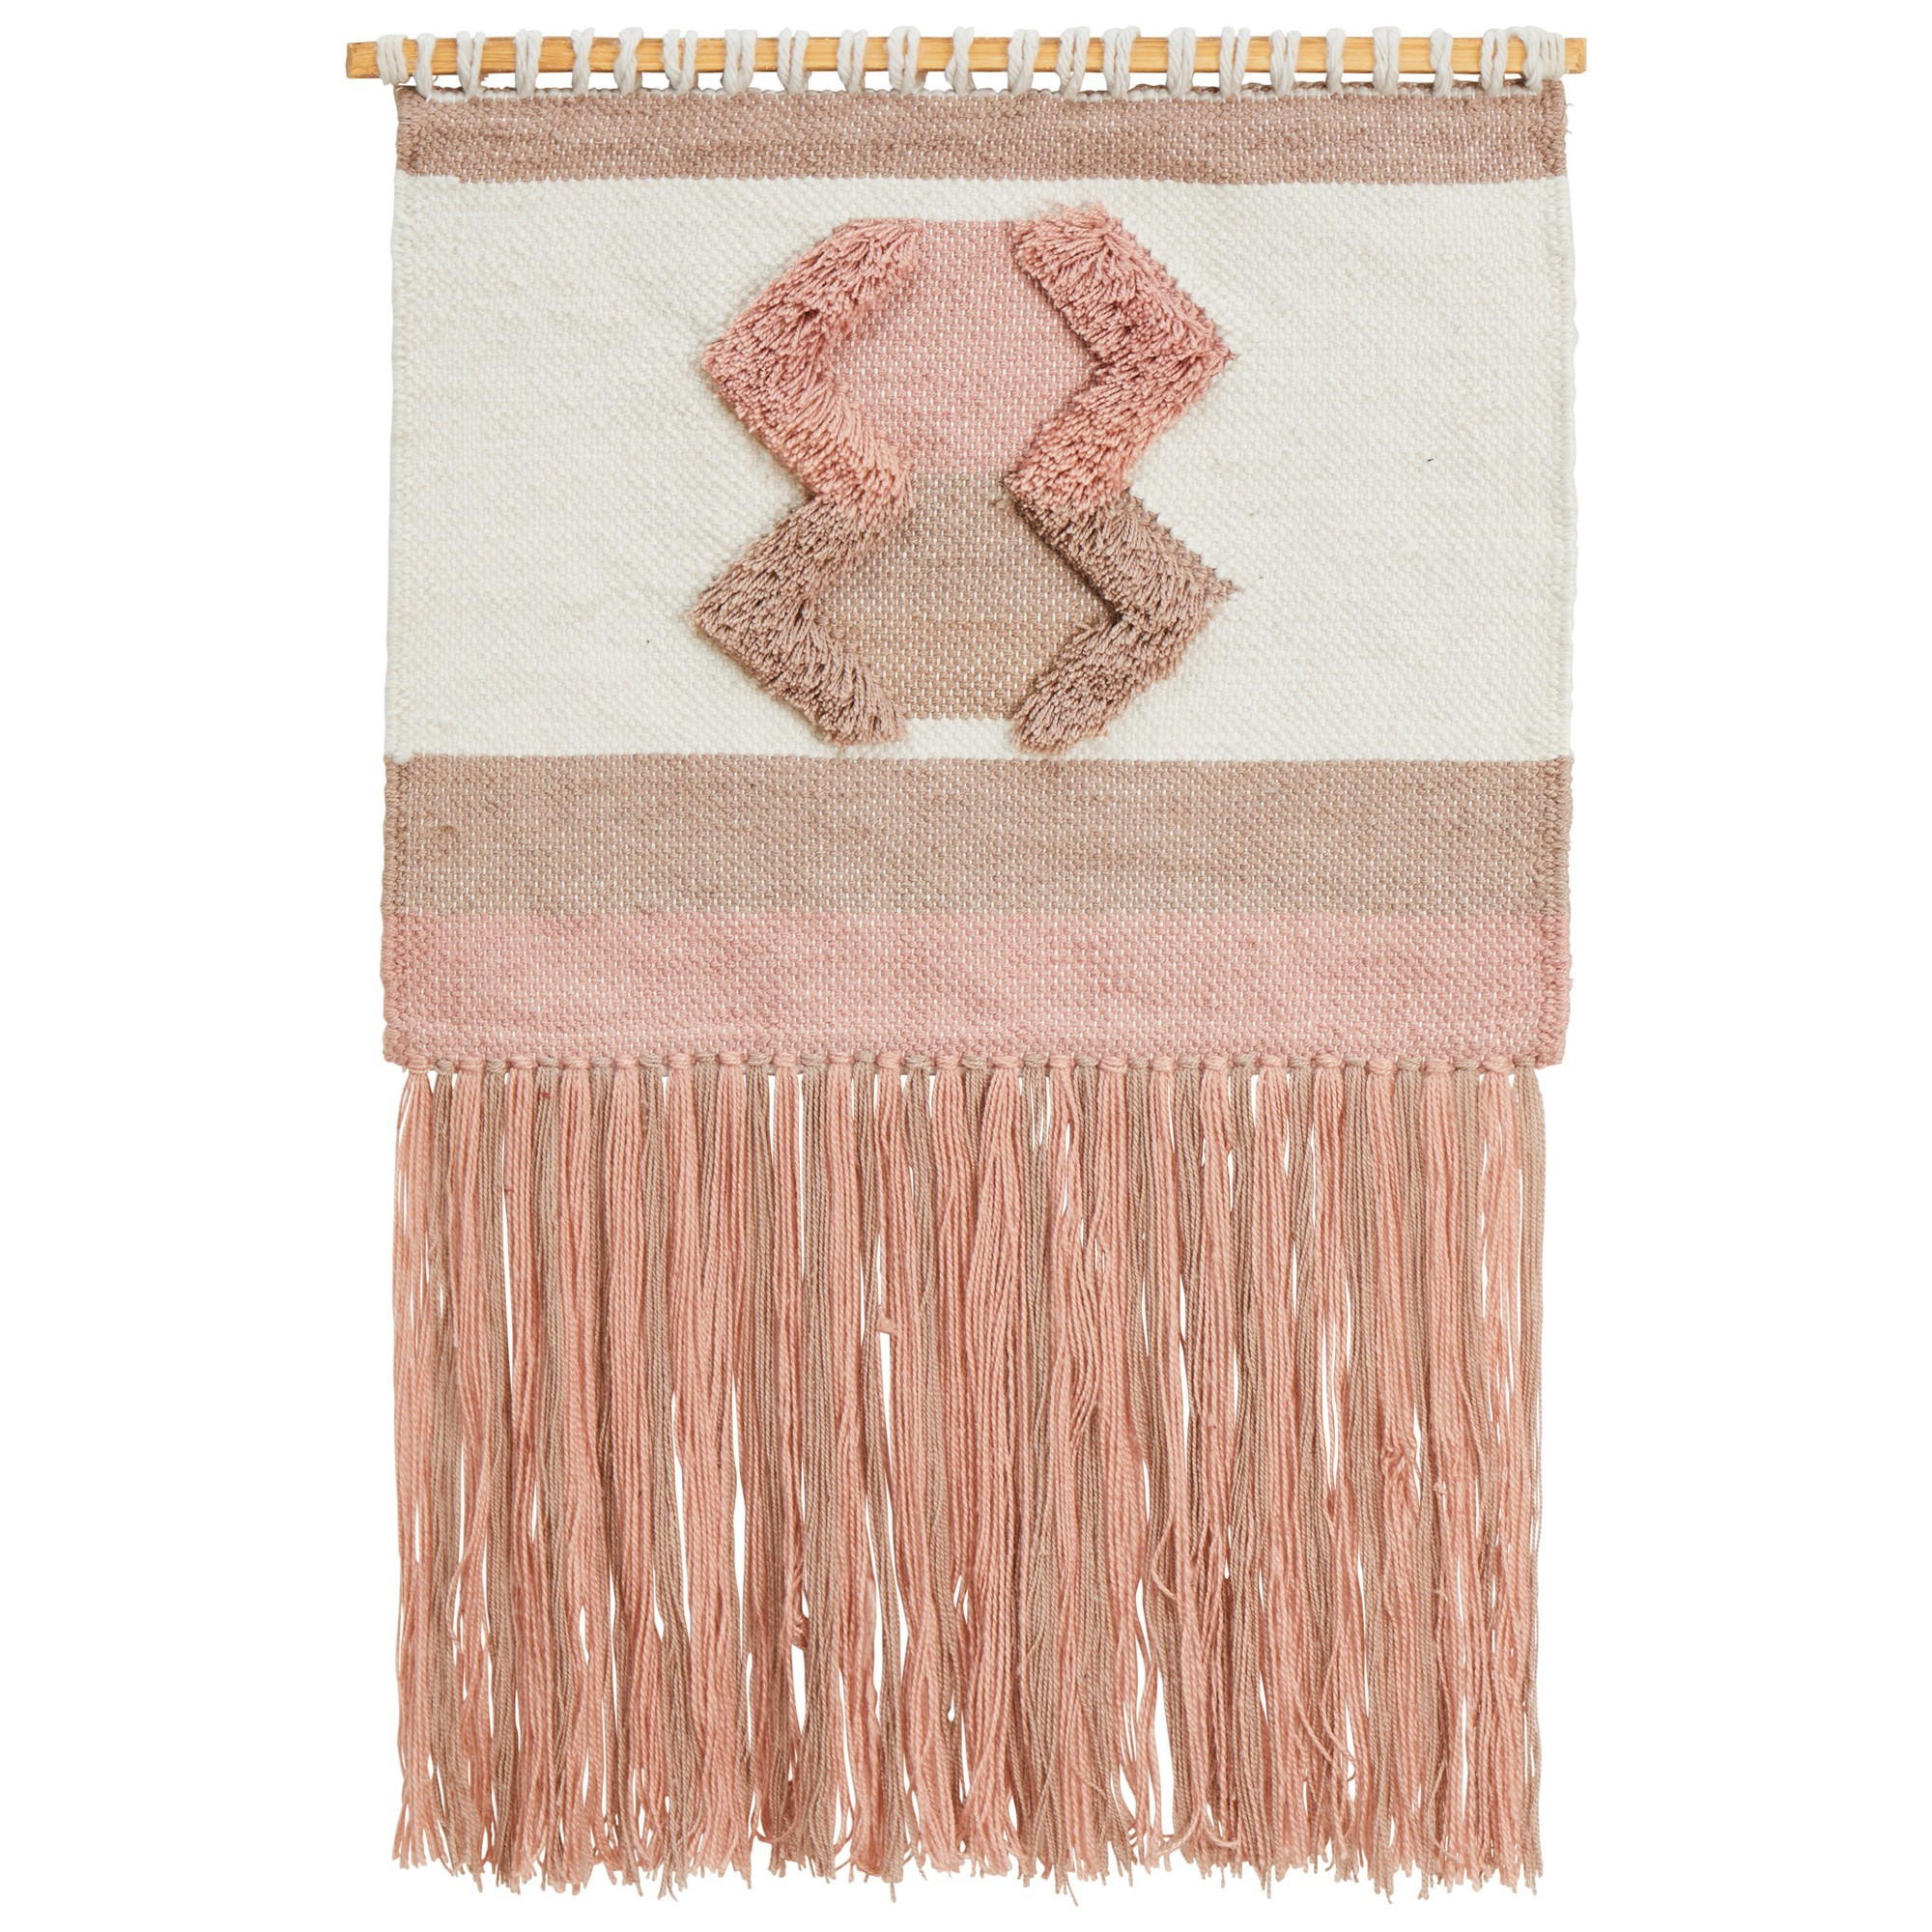 Twyla Handcrafted Textured Wall Hanging